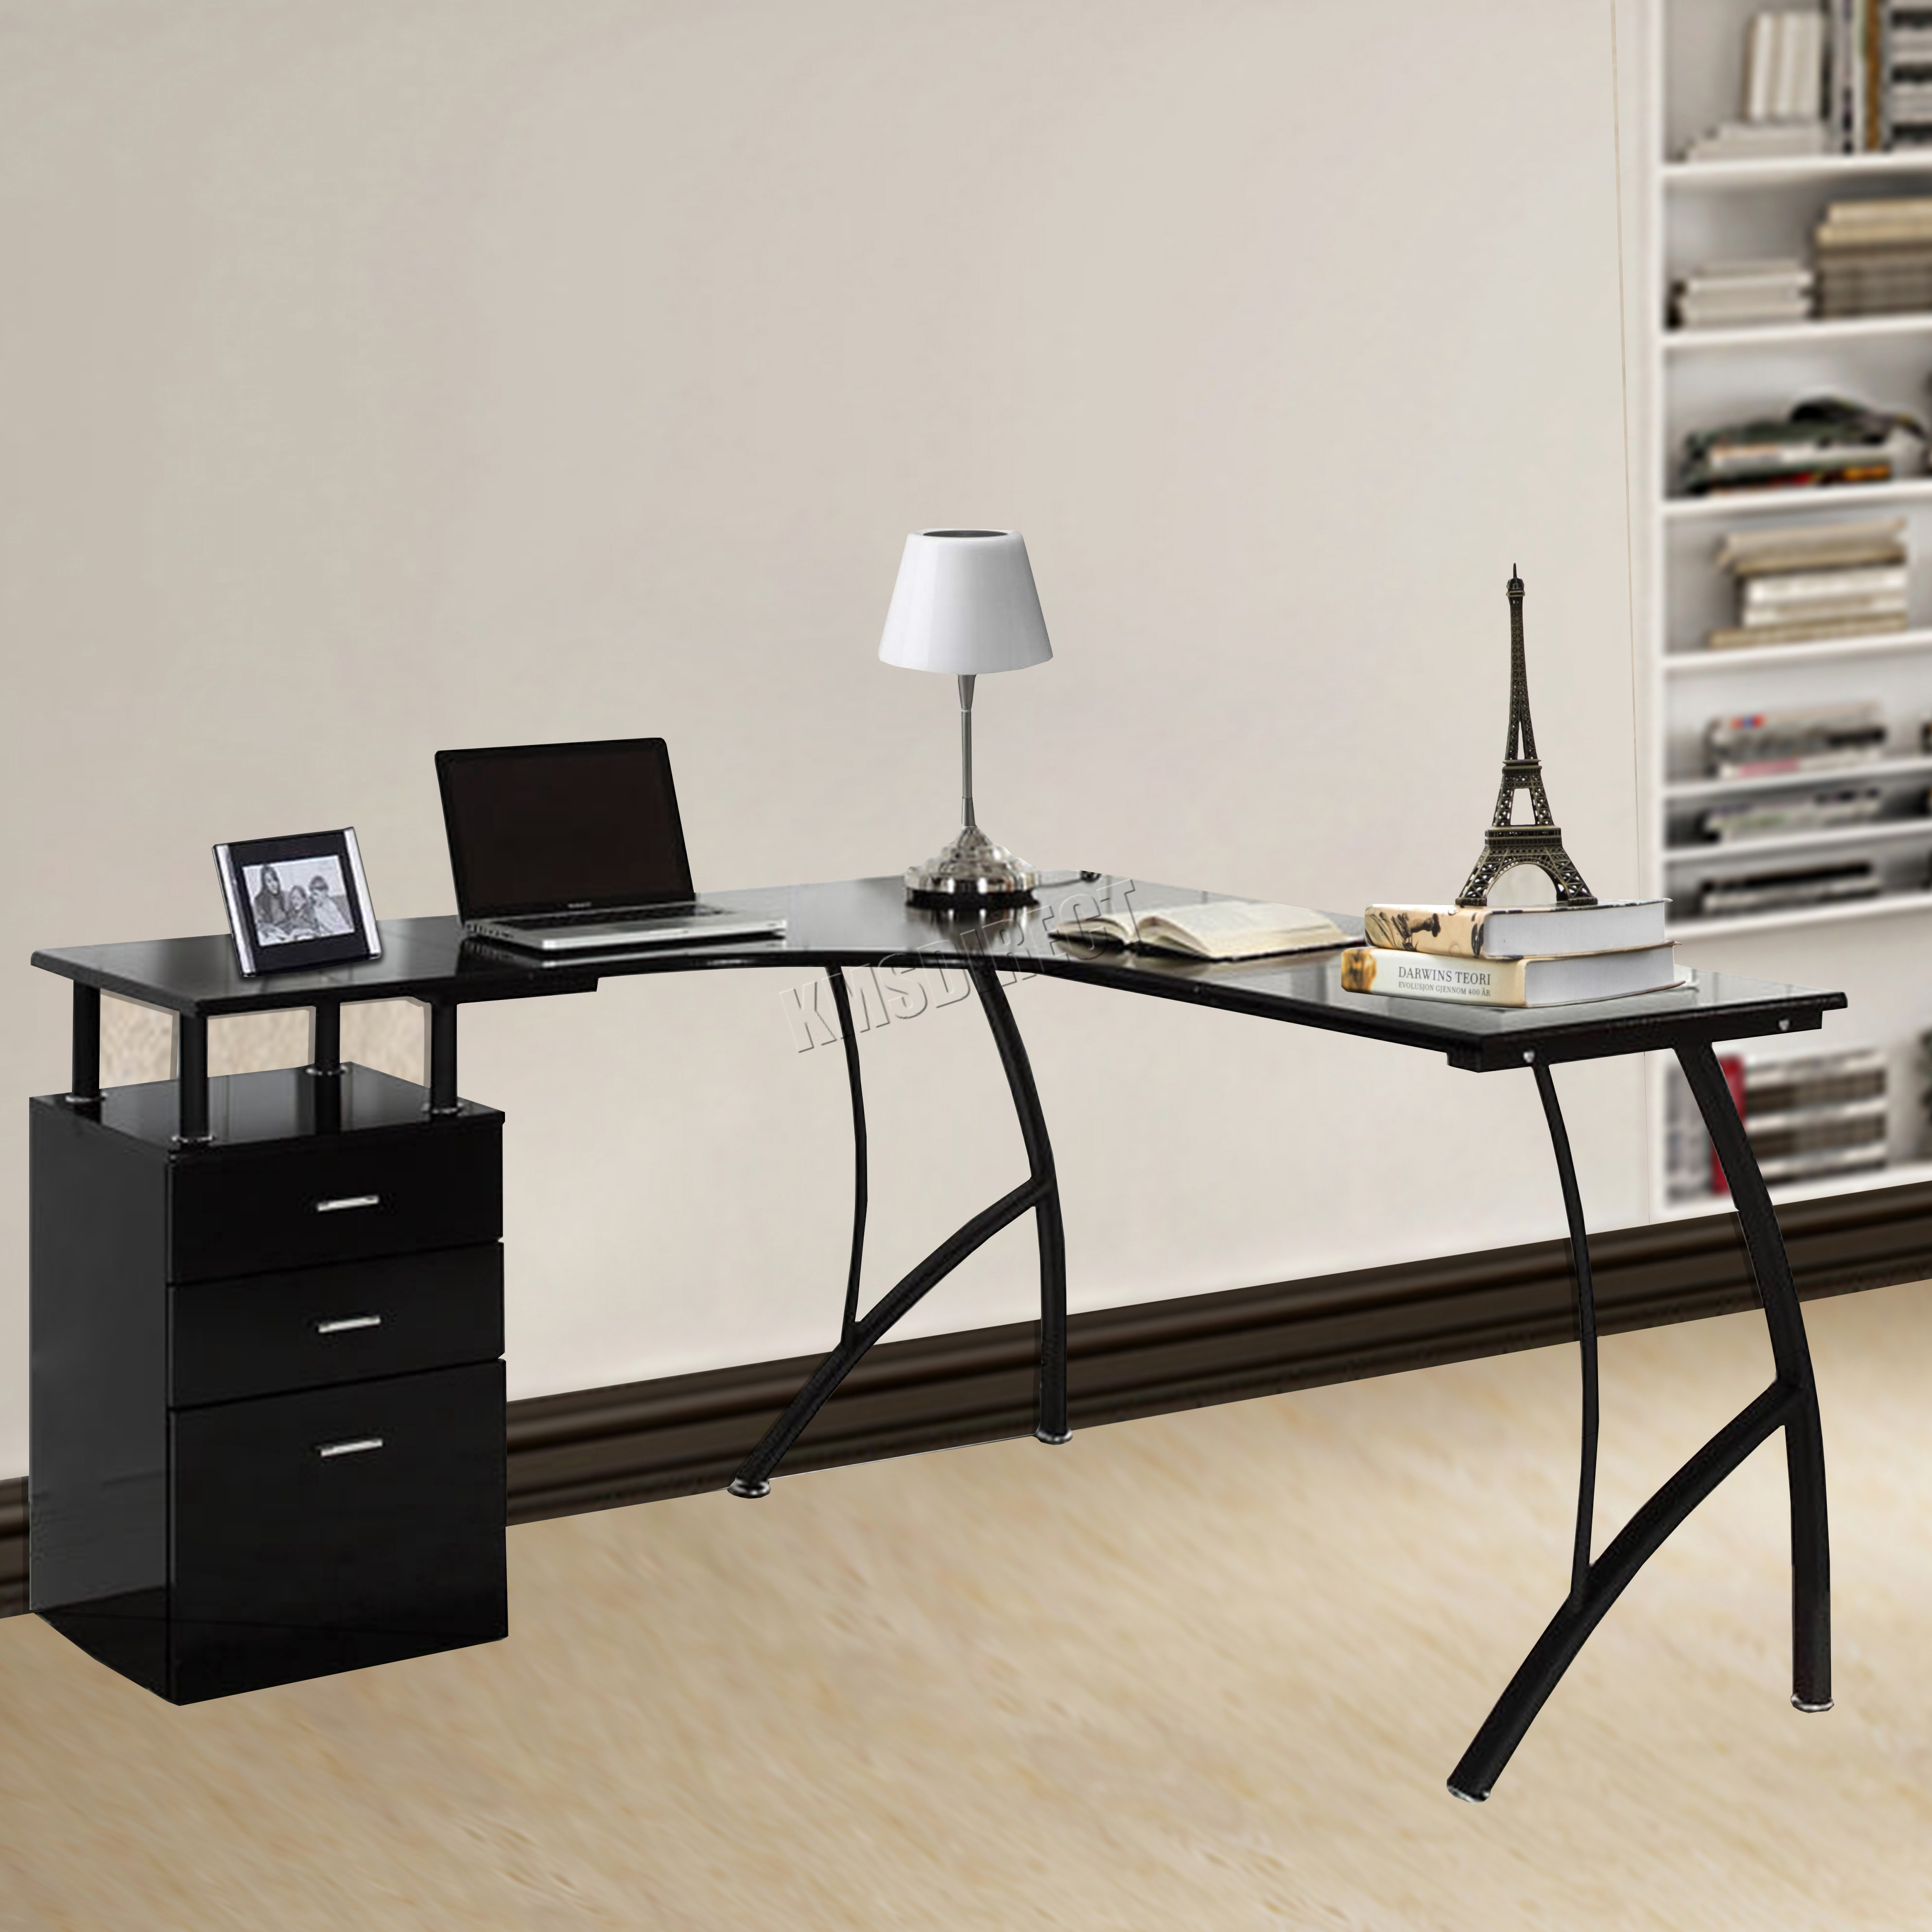 office study desk. Sentinel WestWood L-Shaped Corner Computer Desk PC Table Drawers Home Office Study CD04 N